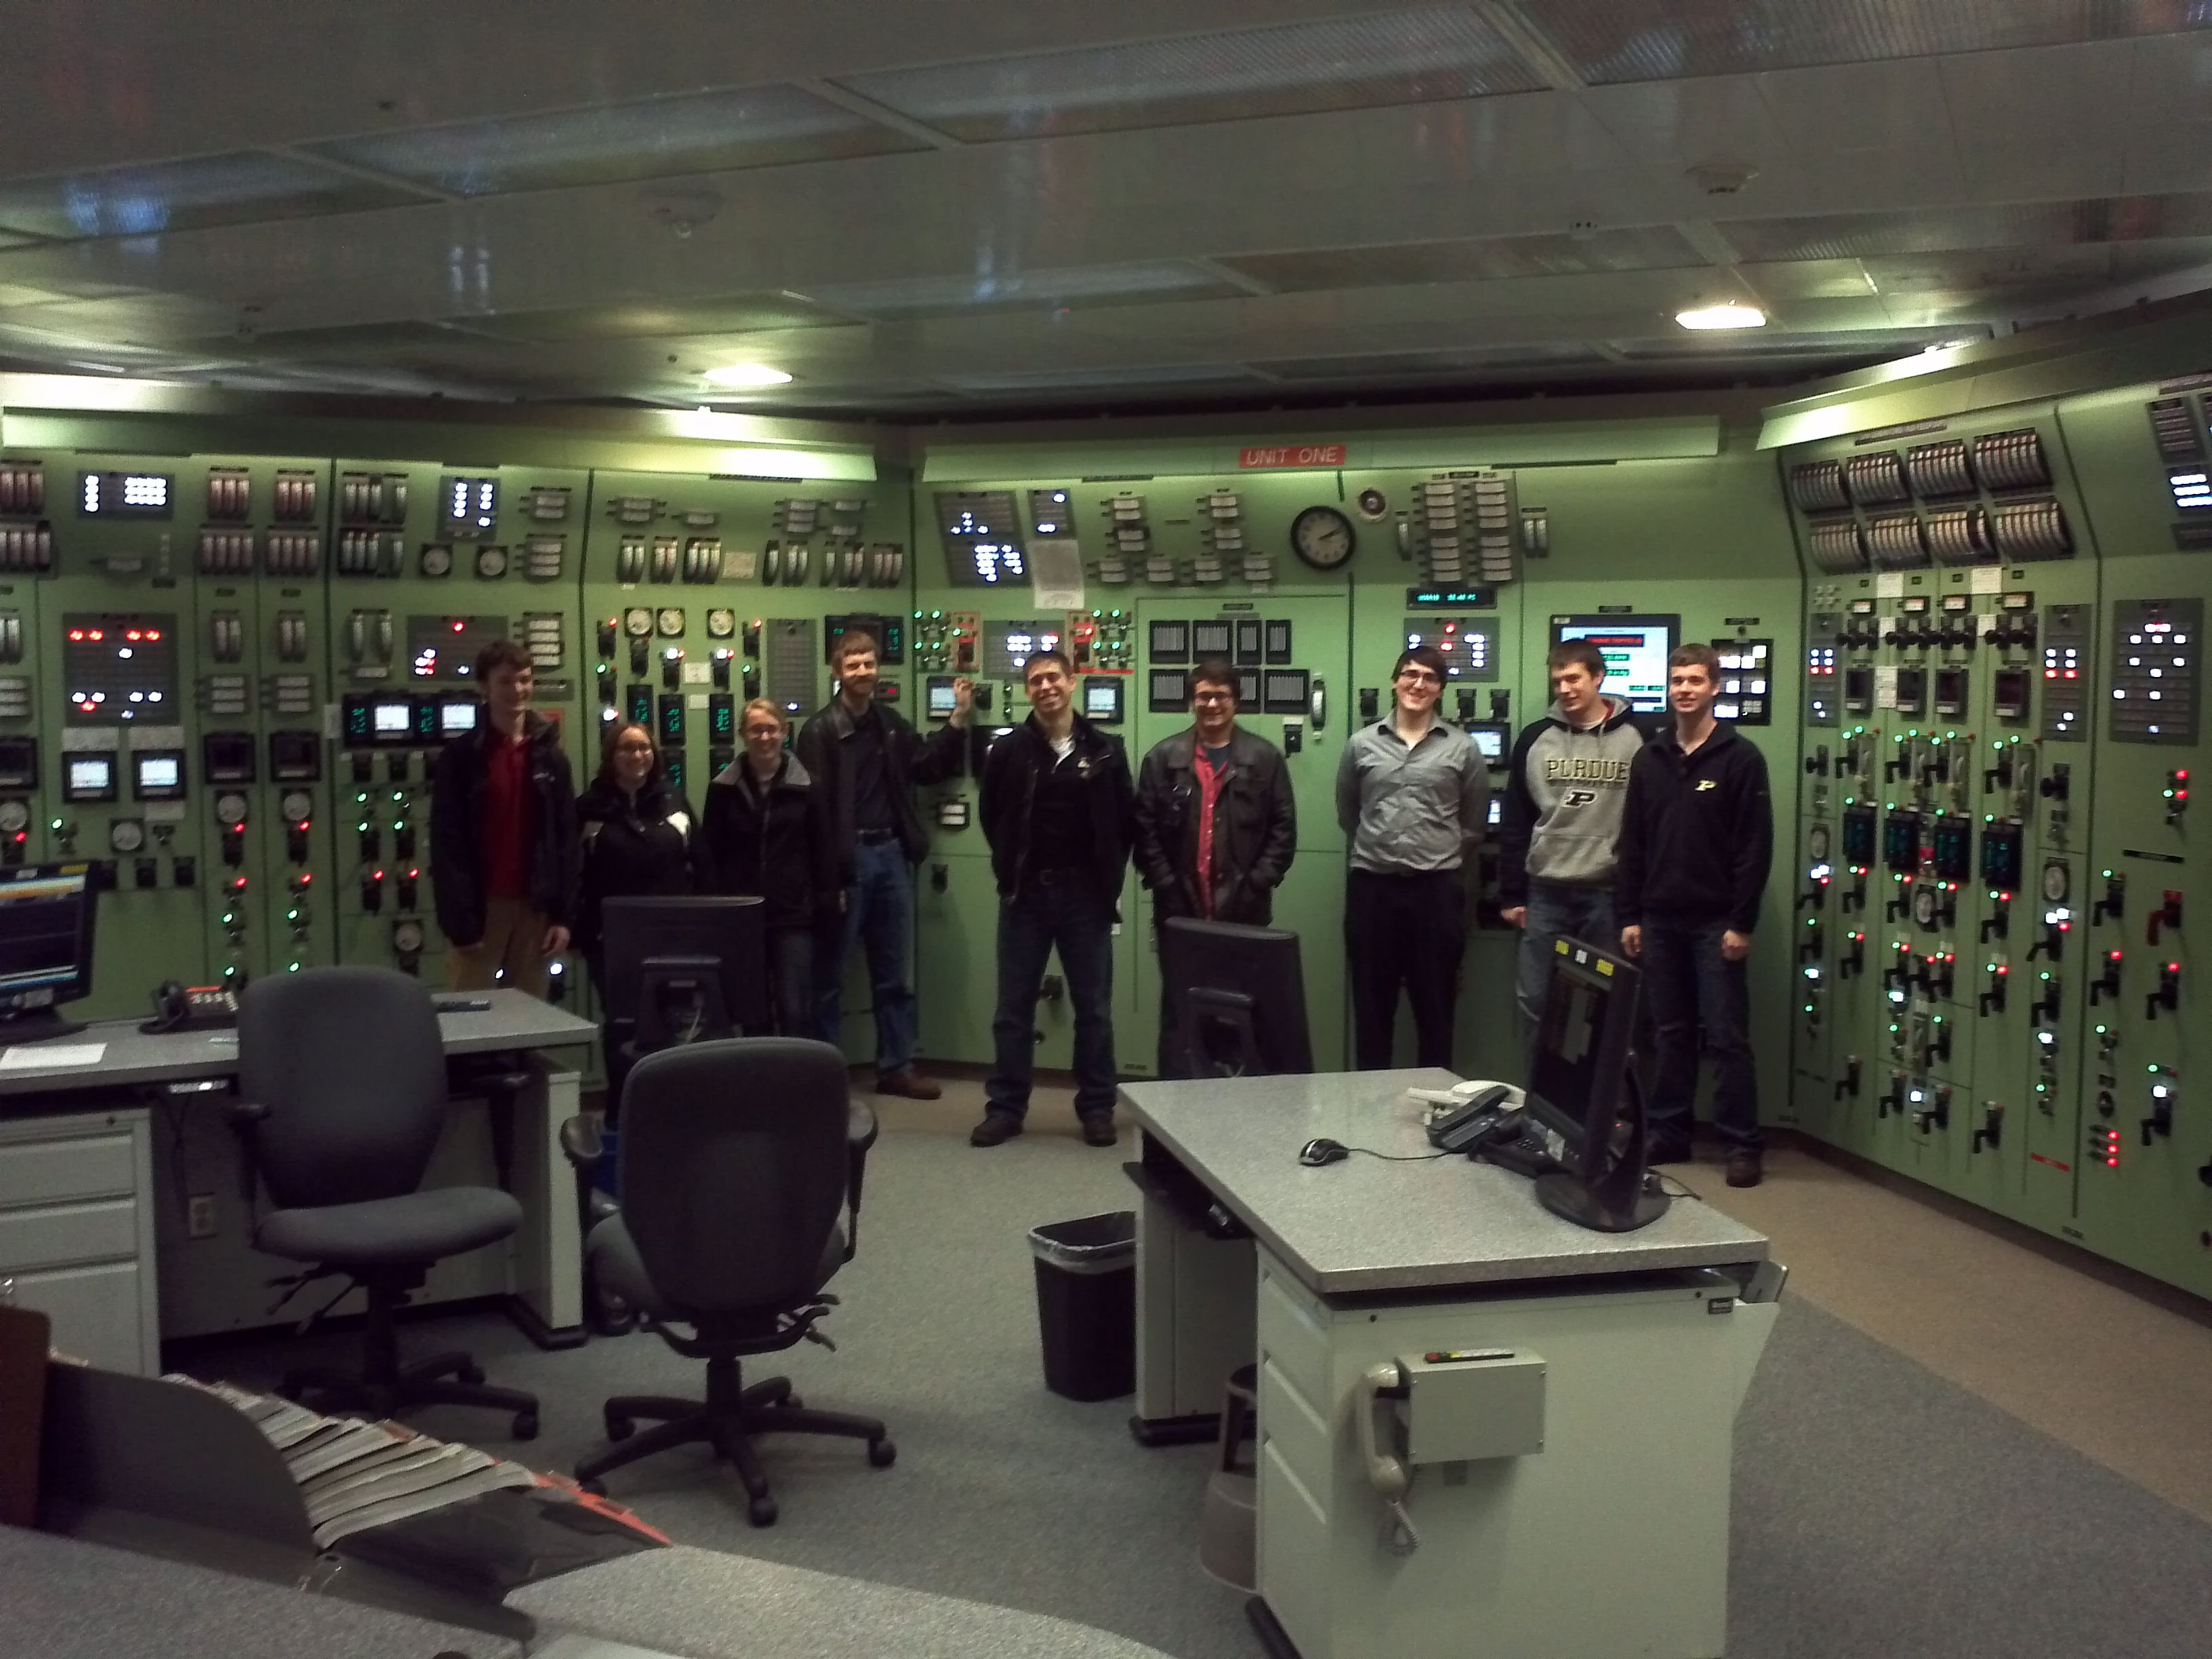 ANS Students visit DC Cook Nuclear Plant - Nuclear Engineering - Purdue University